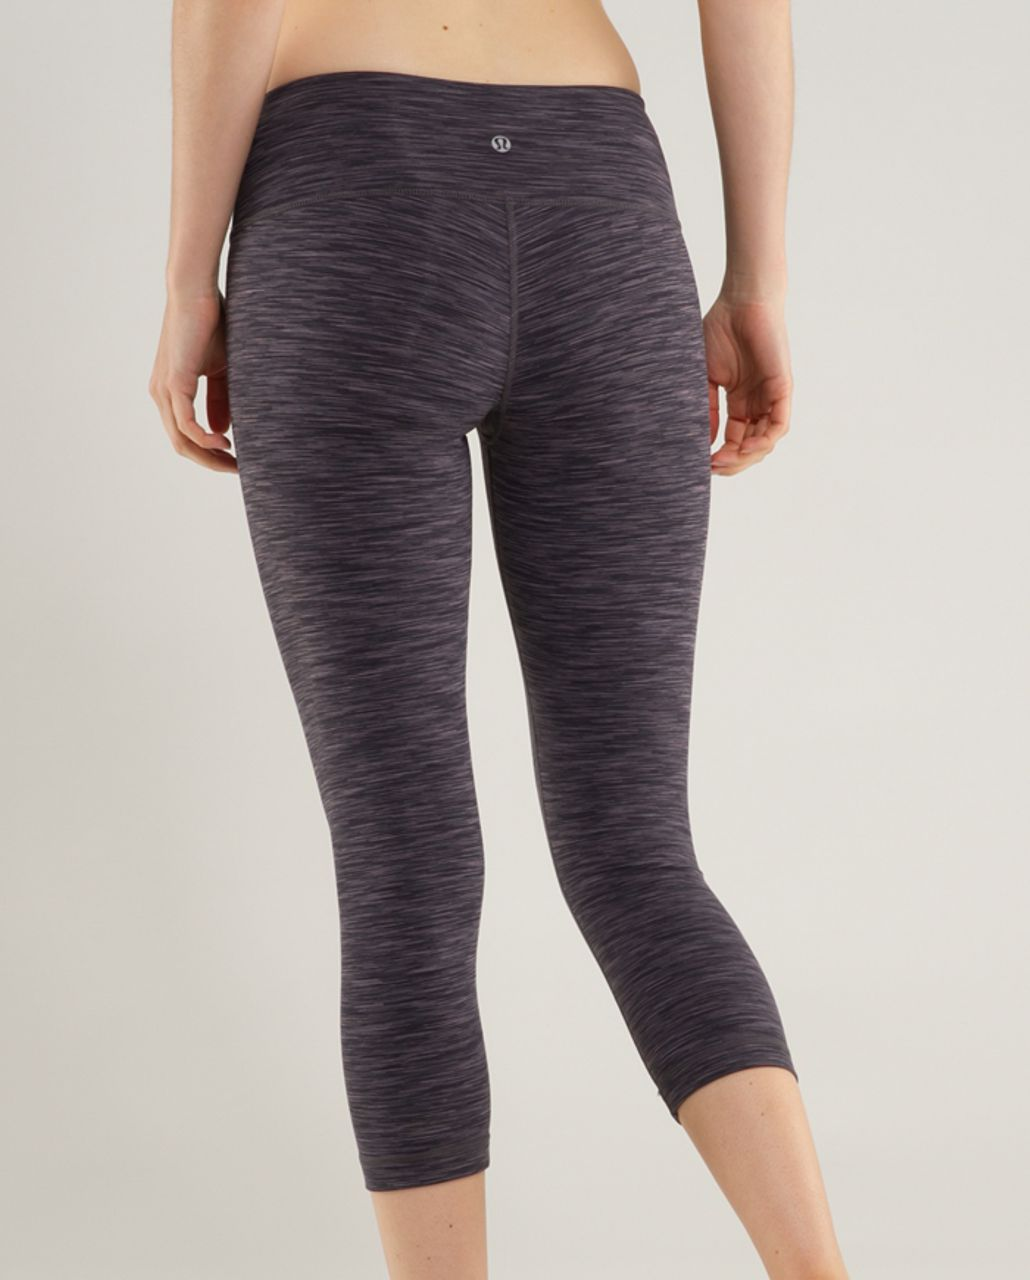 Lululemon Wunder Under Crop - Black Space Dye /  Black